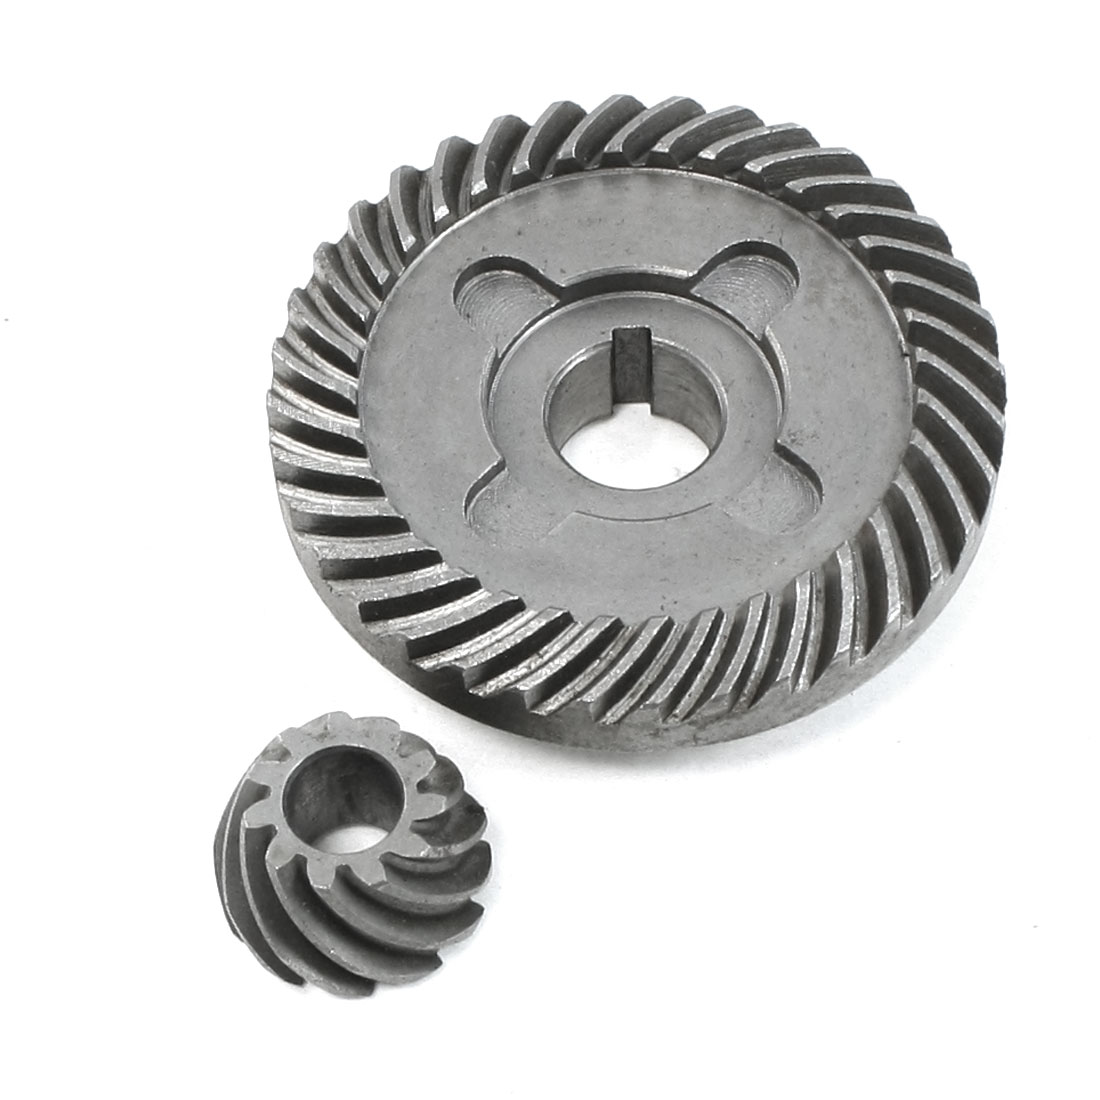 Gray Cut Out Design Gear Wheel Gray for Hitachi F4 Electric Grinder